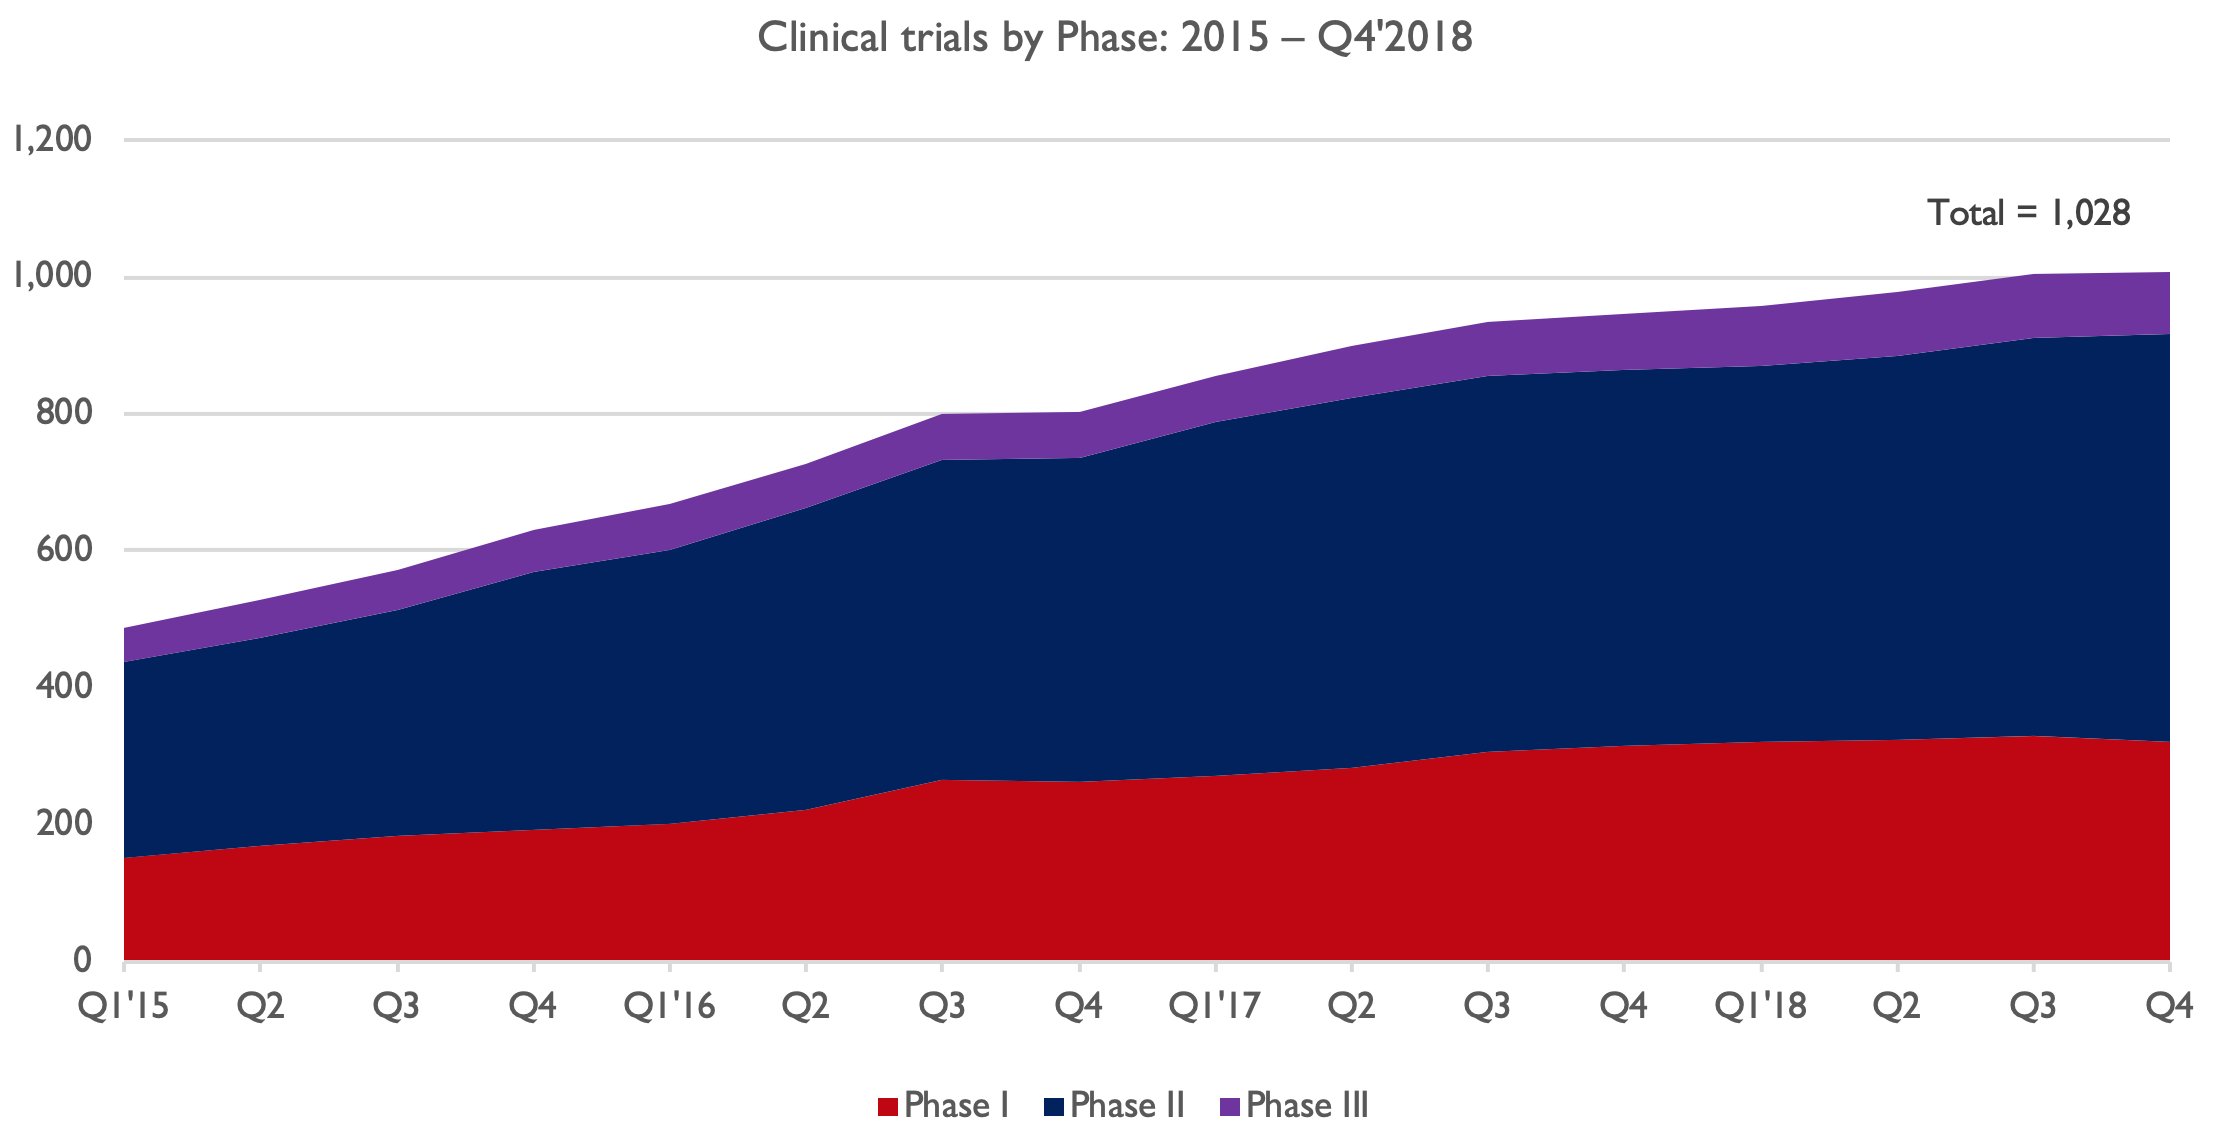 Figure 3.  Number of active clinical trials since 2015 (data from ARM).